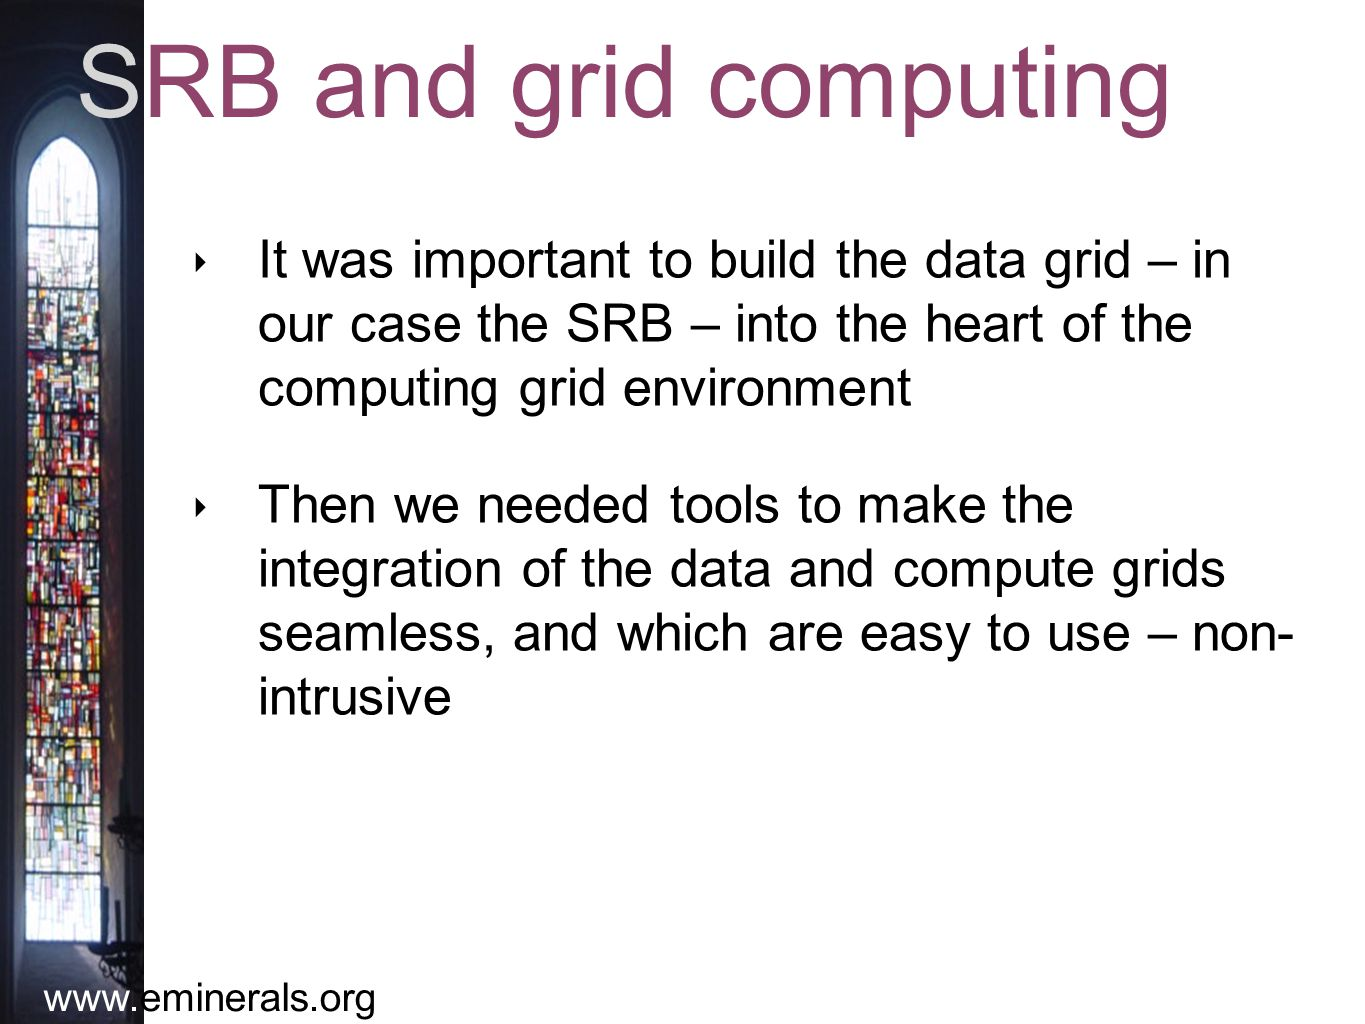 www.eminerals.org SRB and grid computing ‣ It was important to build the data grid – in our case the SRB – into the heart of the computing grid environment ‣ Then we needed tools to make the integration of the data and compute grids seamless, and which are easy to use – non- intrusive